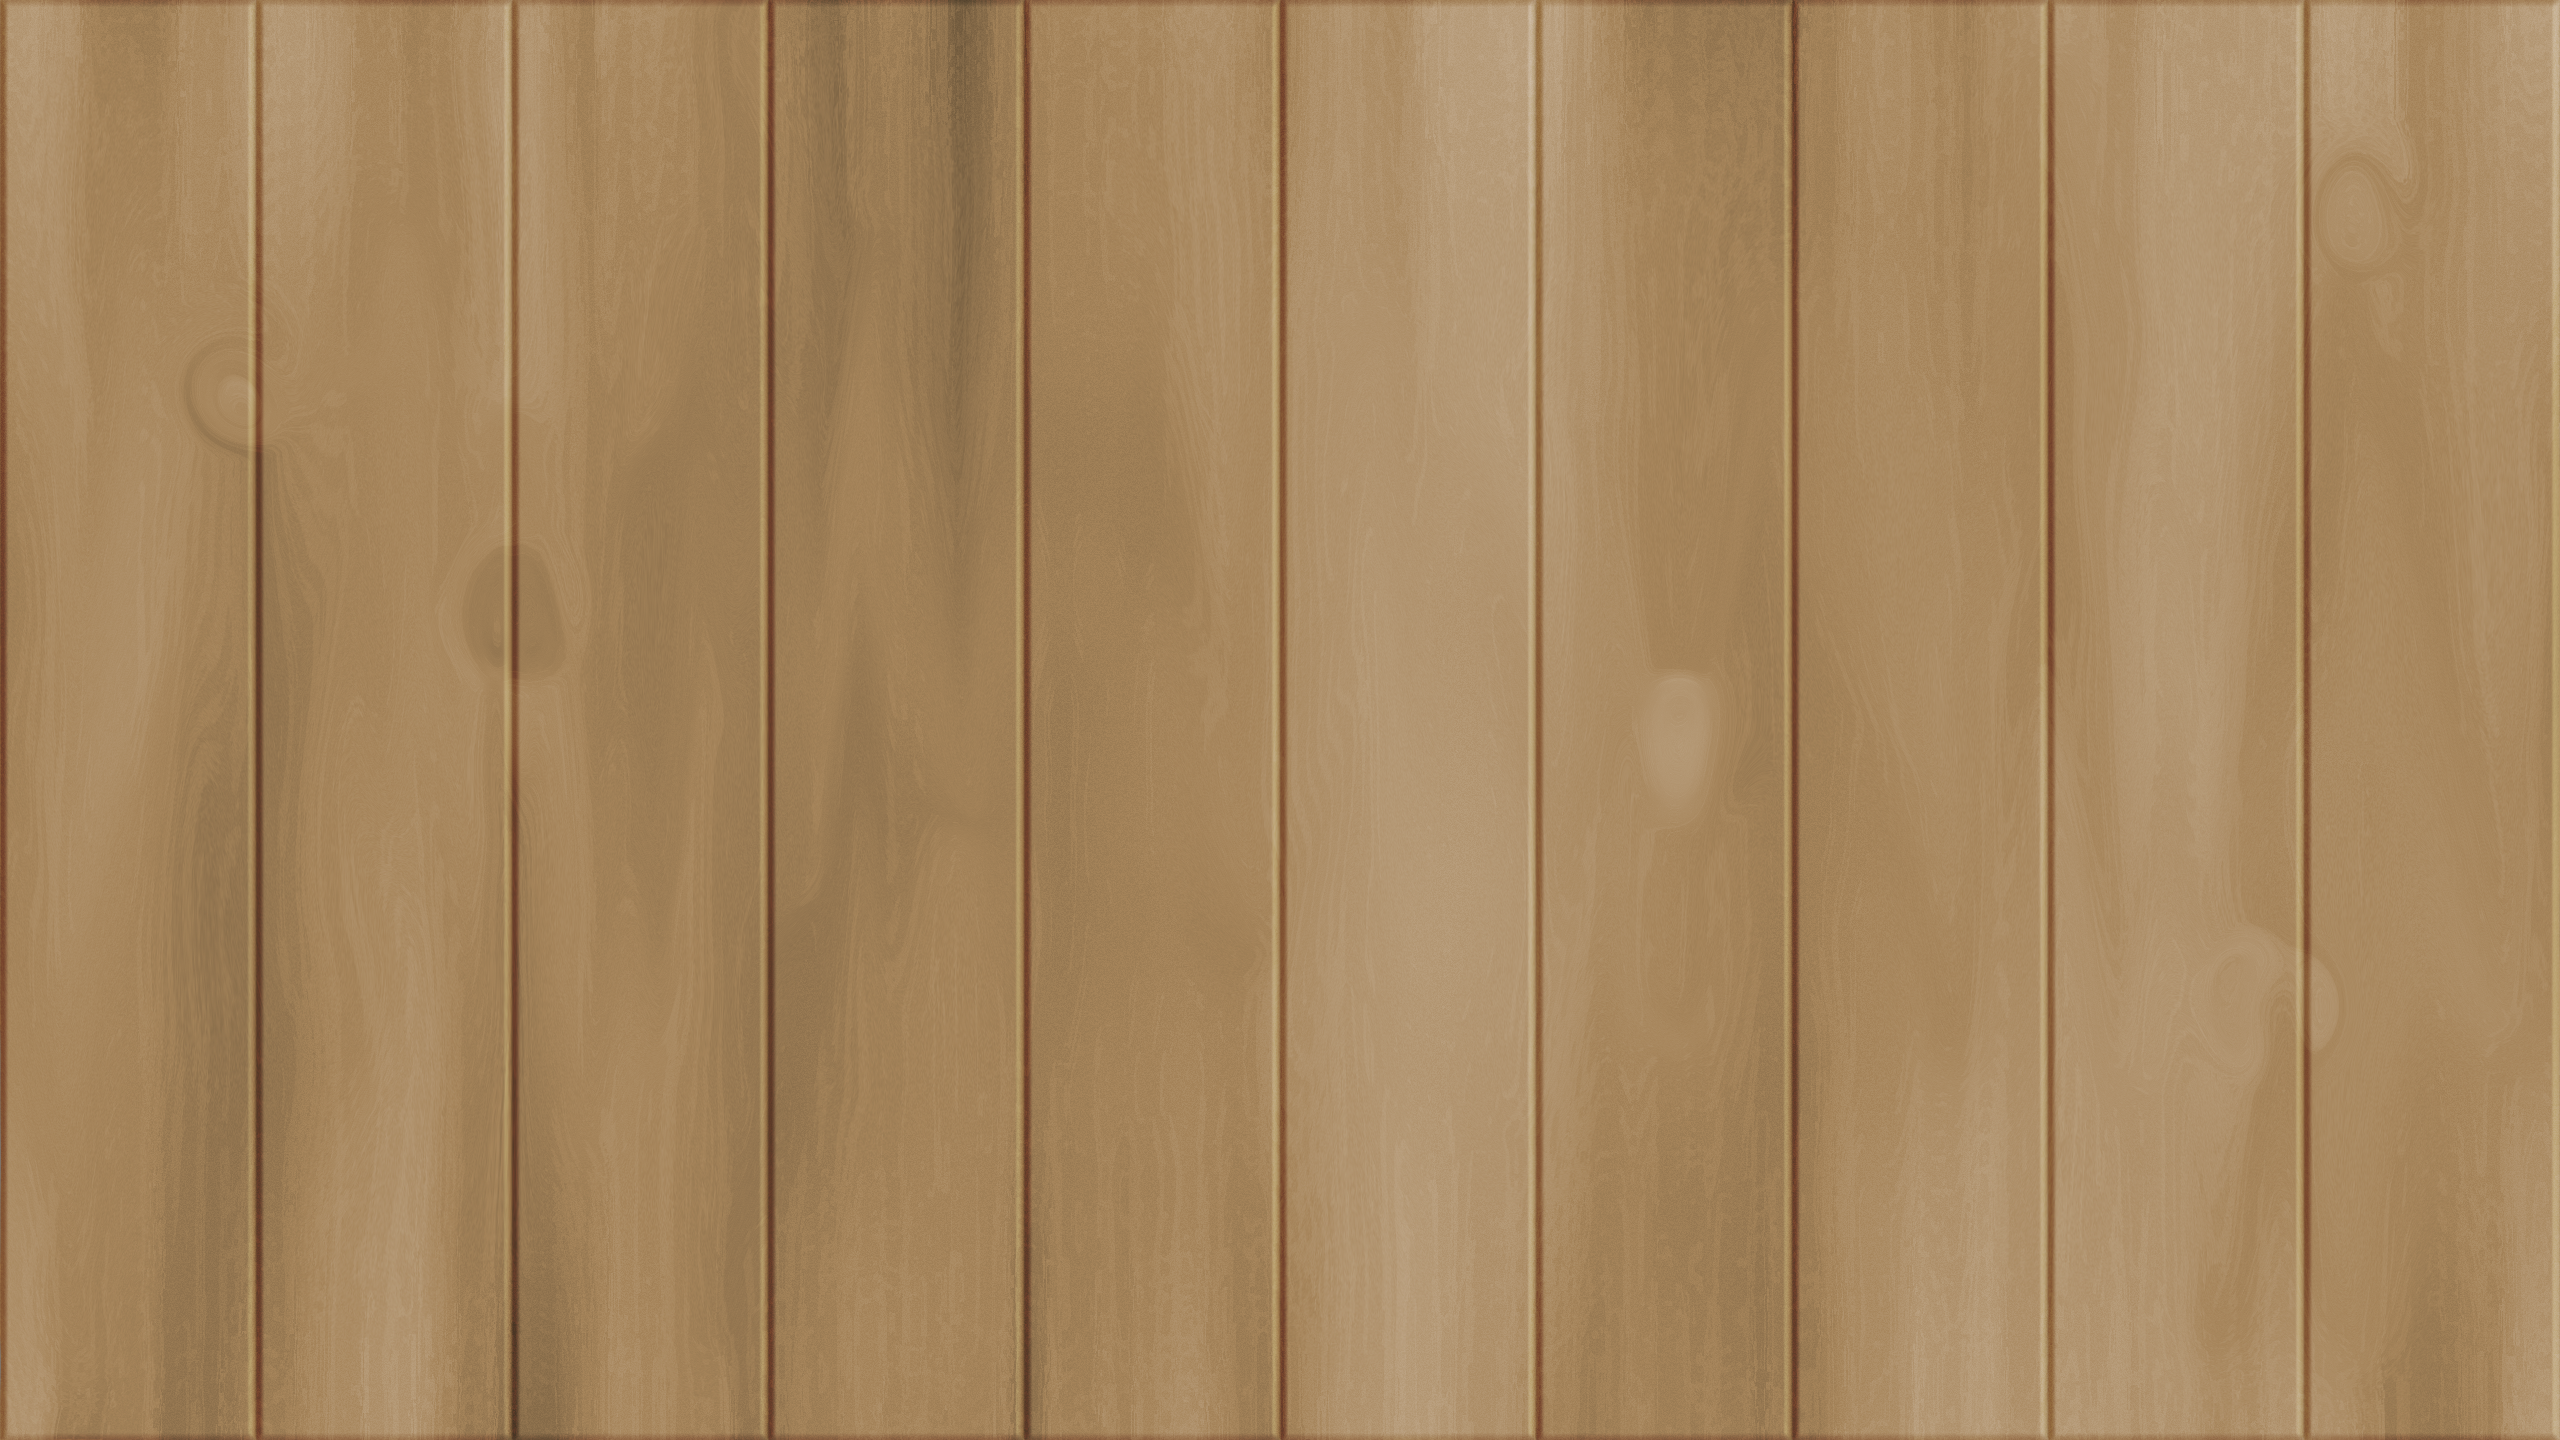 Hd Panelled Wood Texture 2560x1440 By Gizmoguy99 On Deviantart